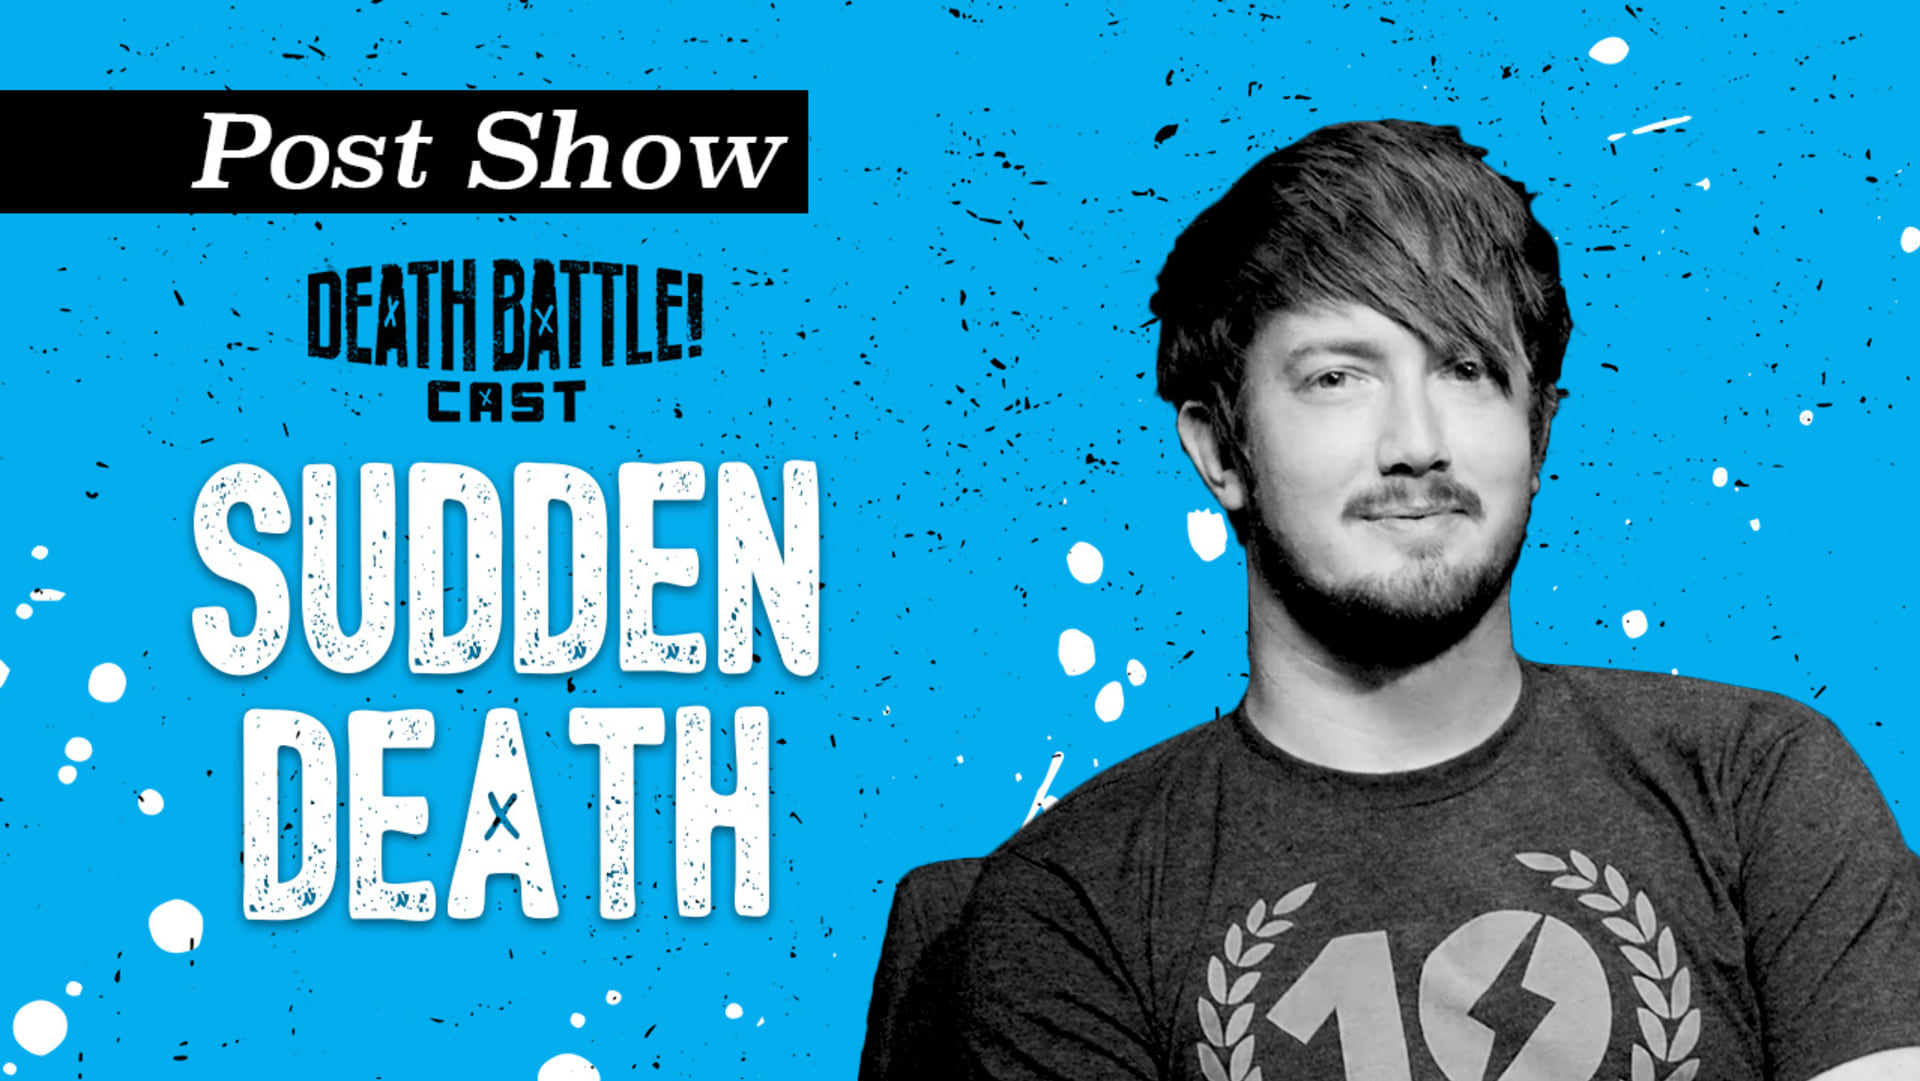 Series Death Battle Cast: Sudden Death - Rooster Teeth